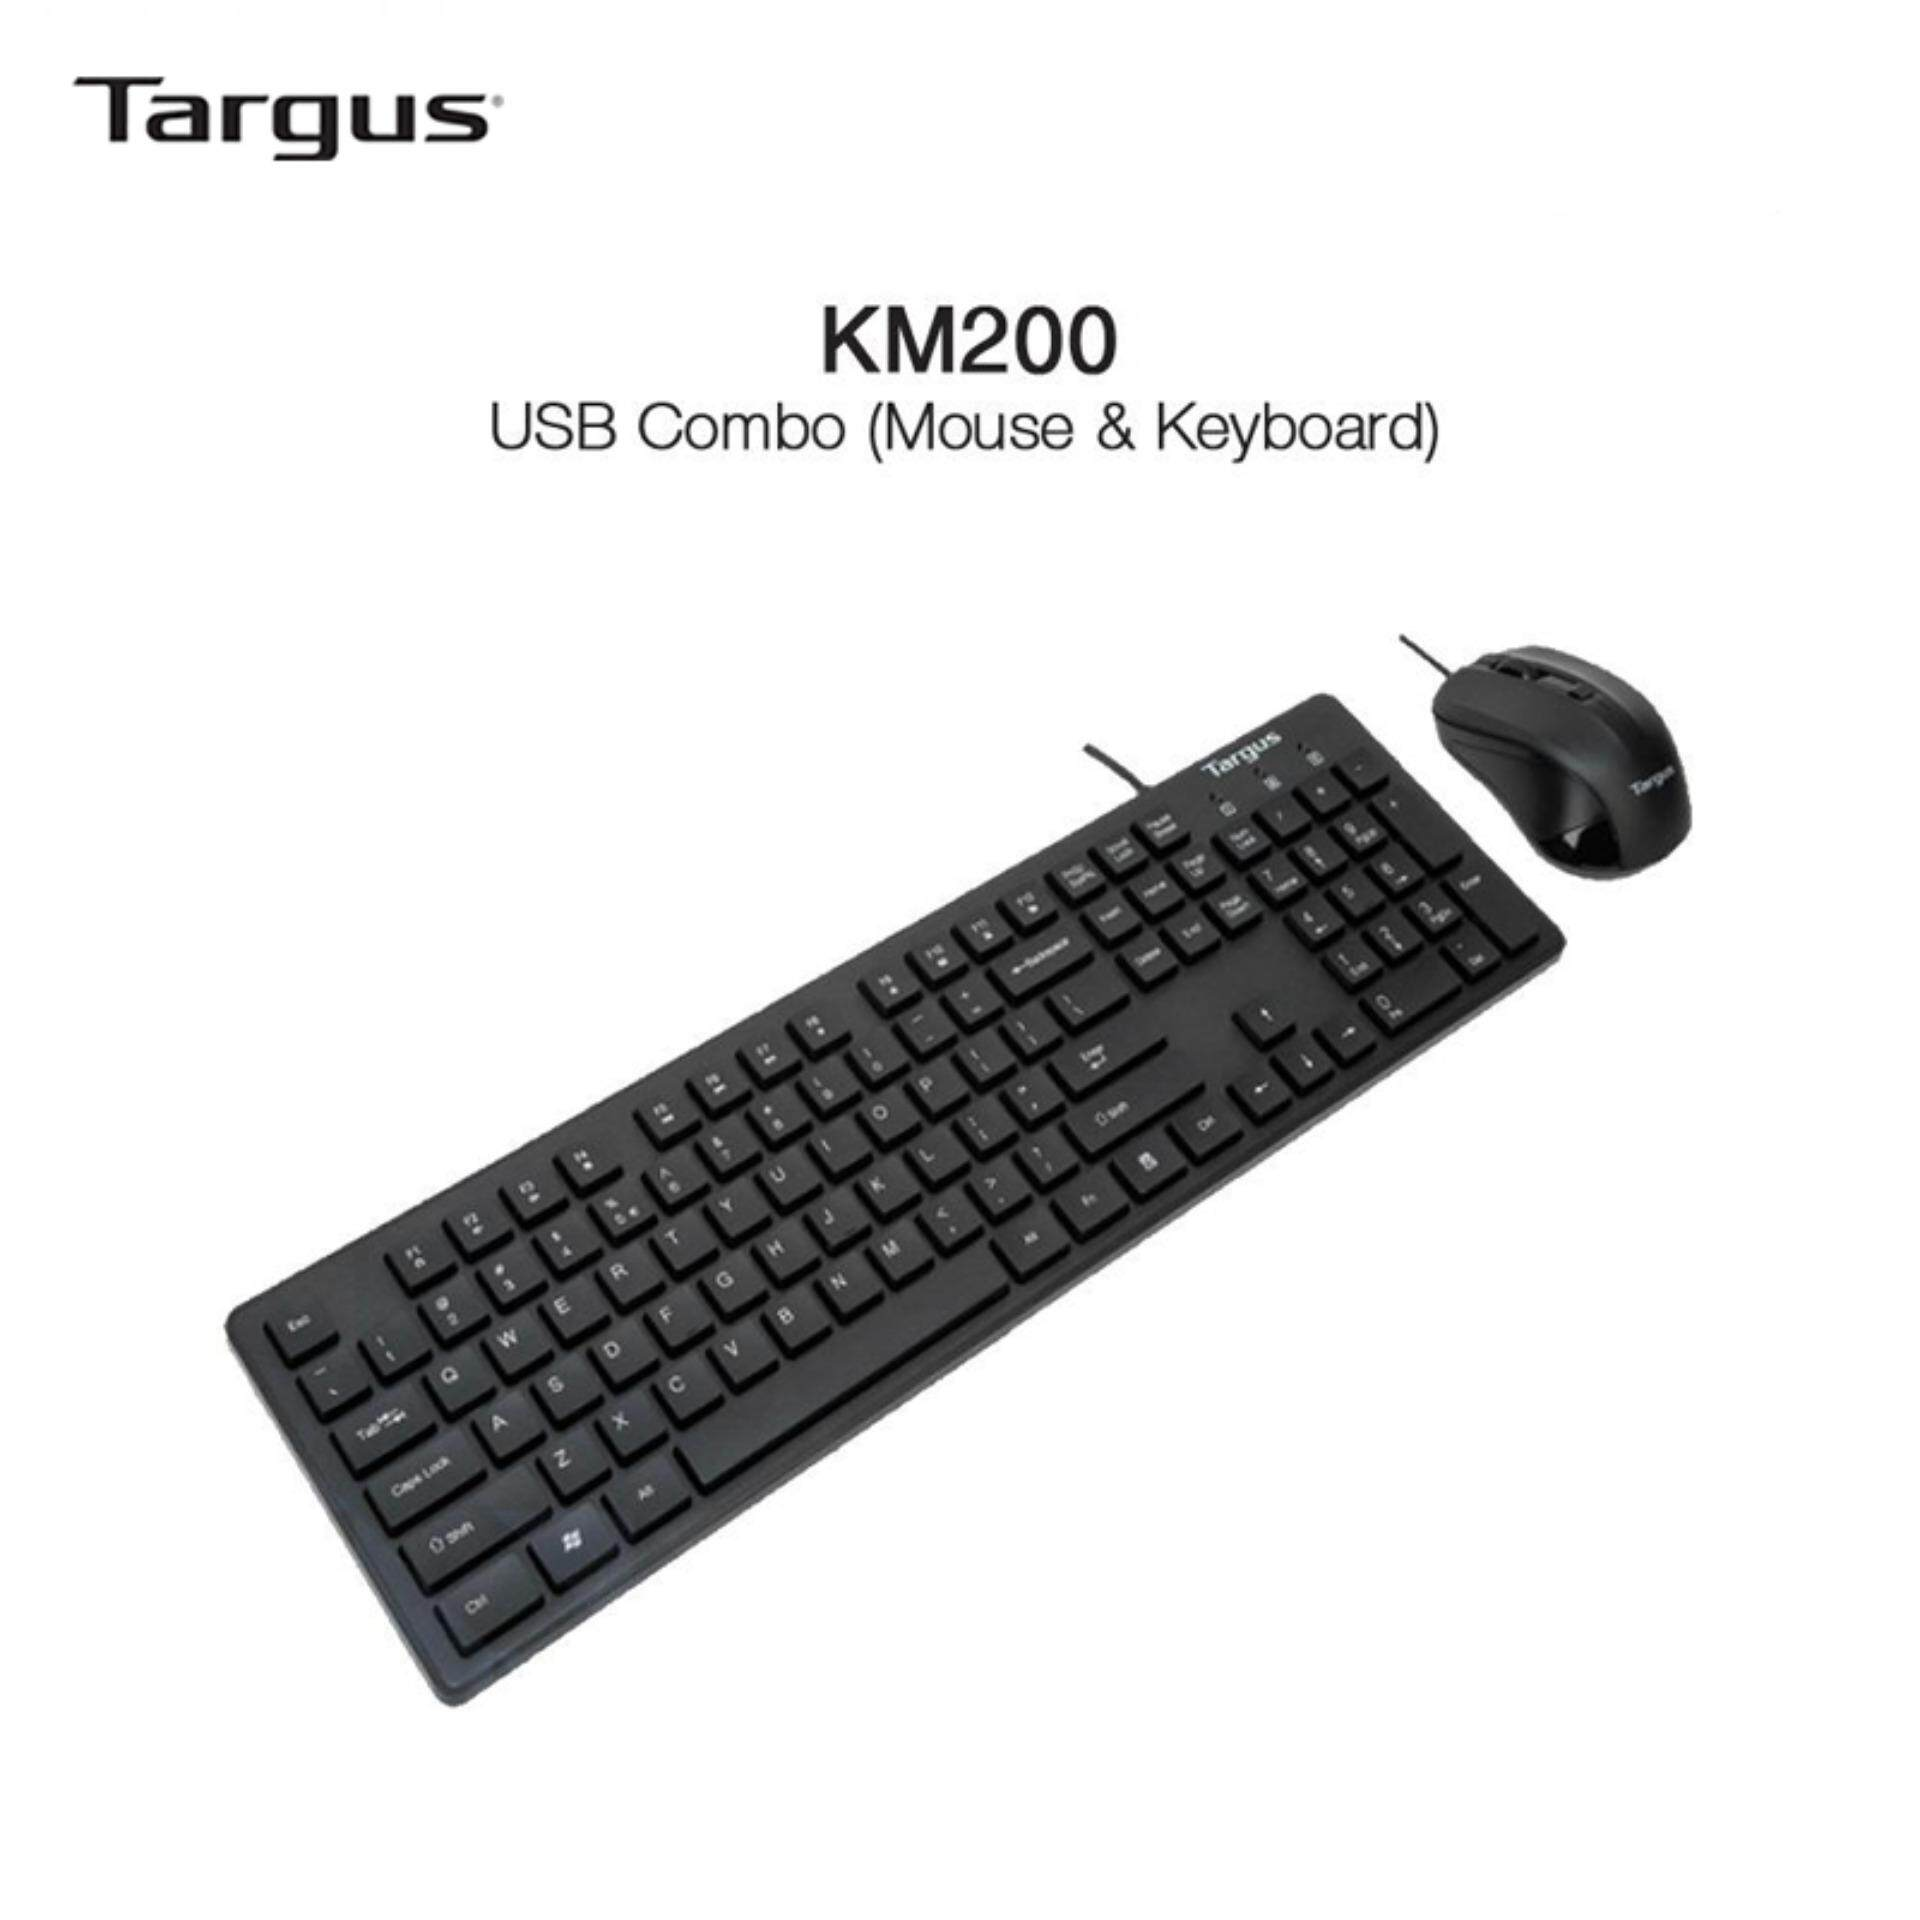 Targus Computer Accessories Keyboards Price In Malaysia Best Keyboard Numeric Usb Combo Km200